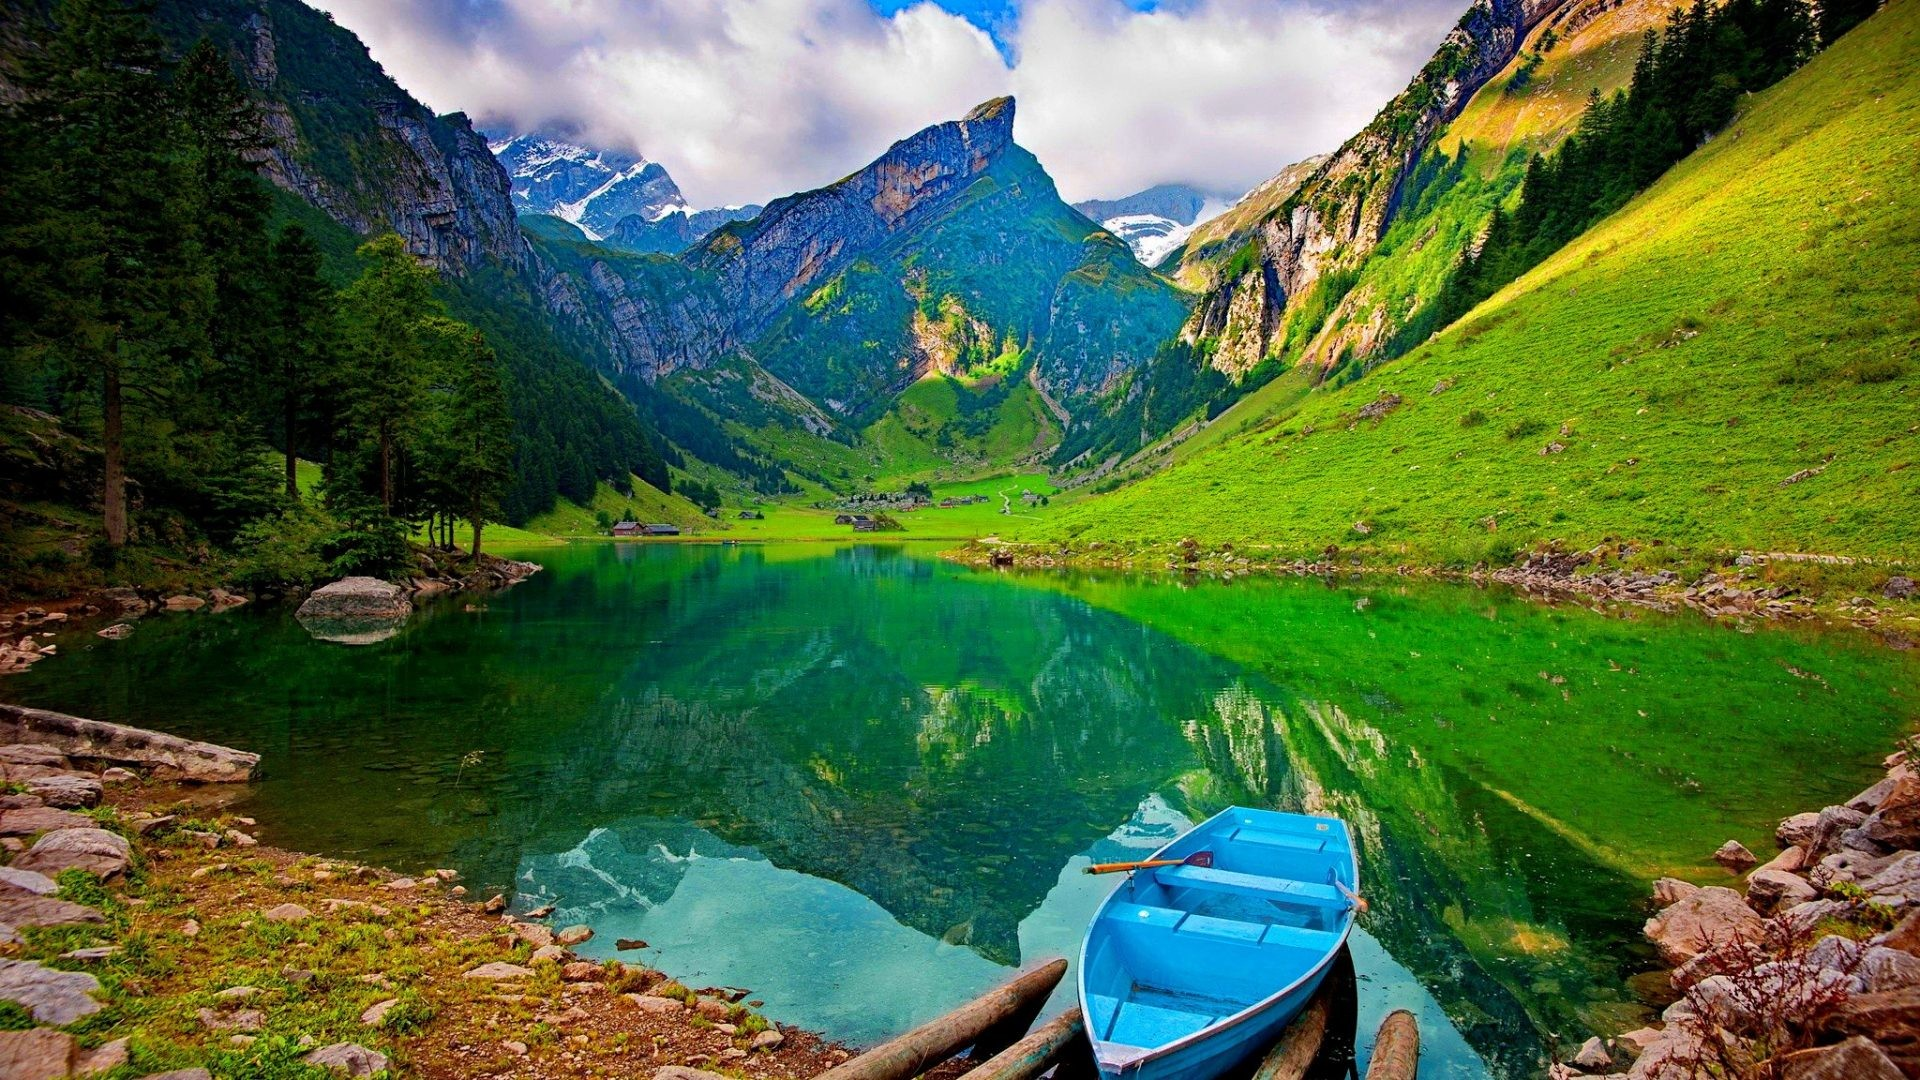 Lakes – Lonely Boat Mountain Lake Hills Emerald Grass Slopes Clear  Lakeshore Sky Nice Summer Nature